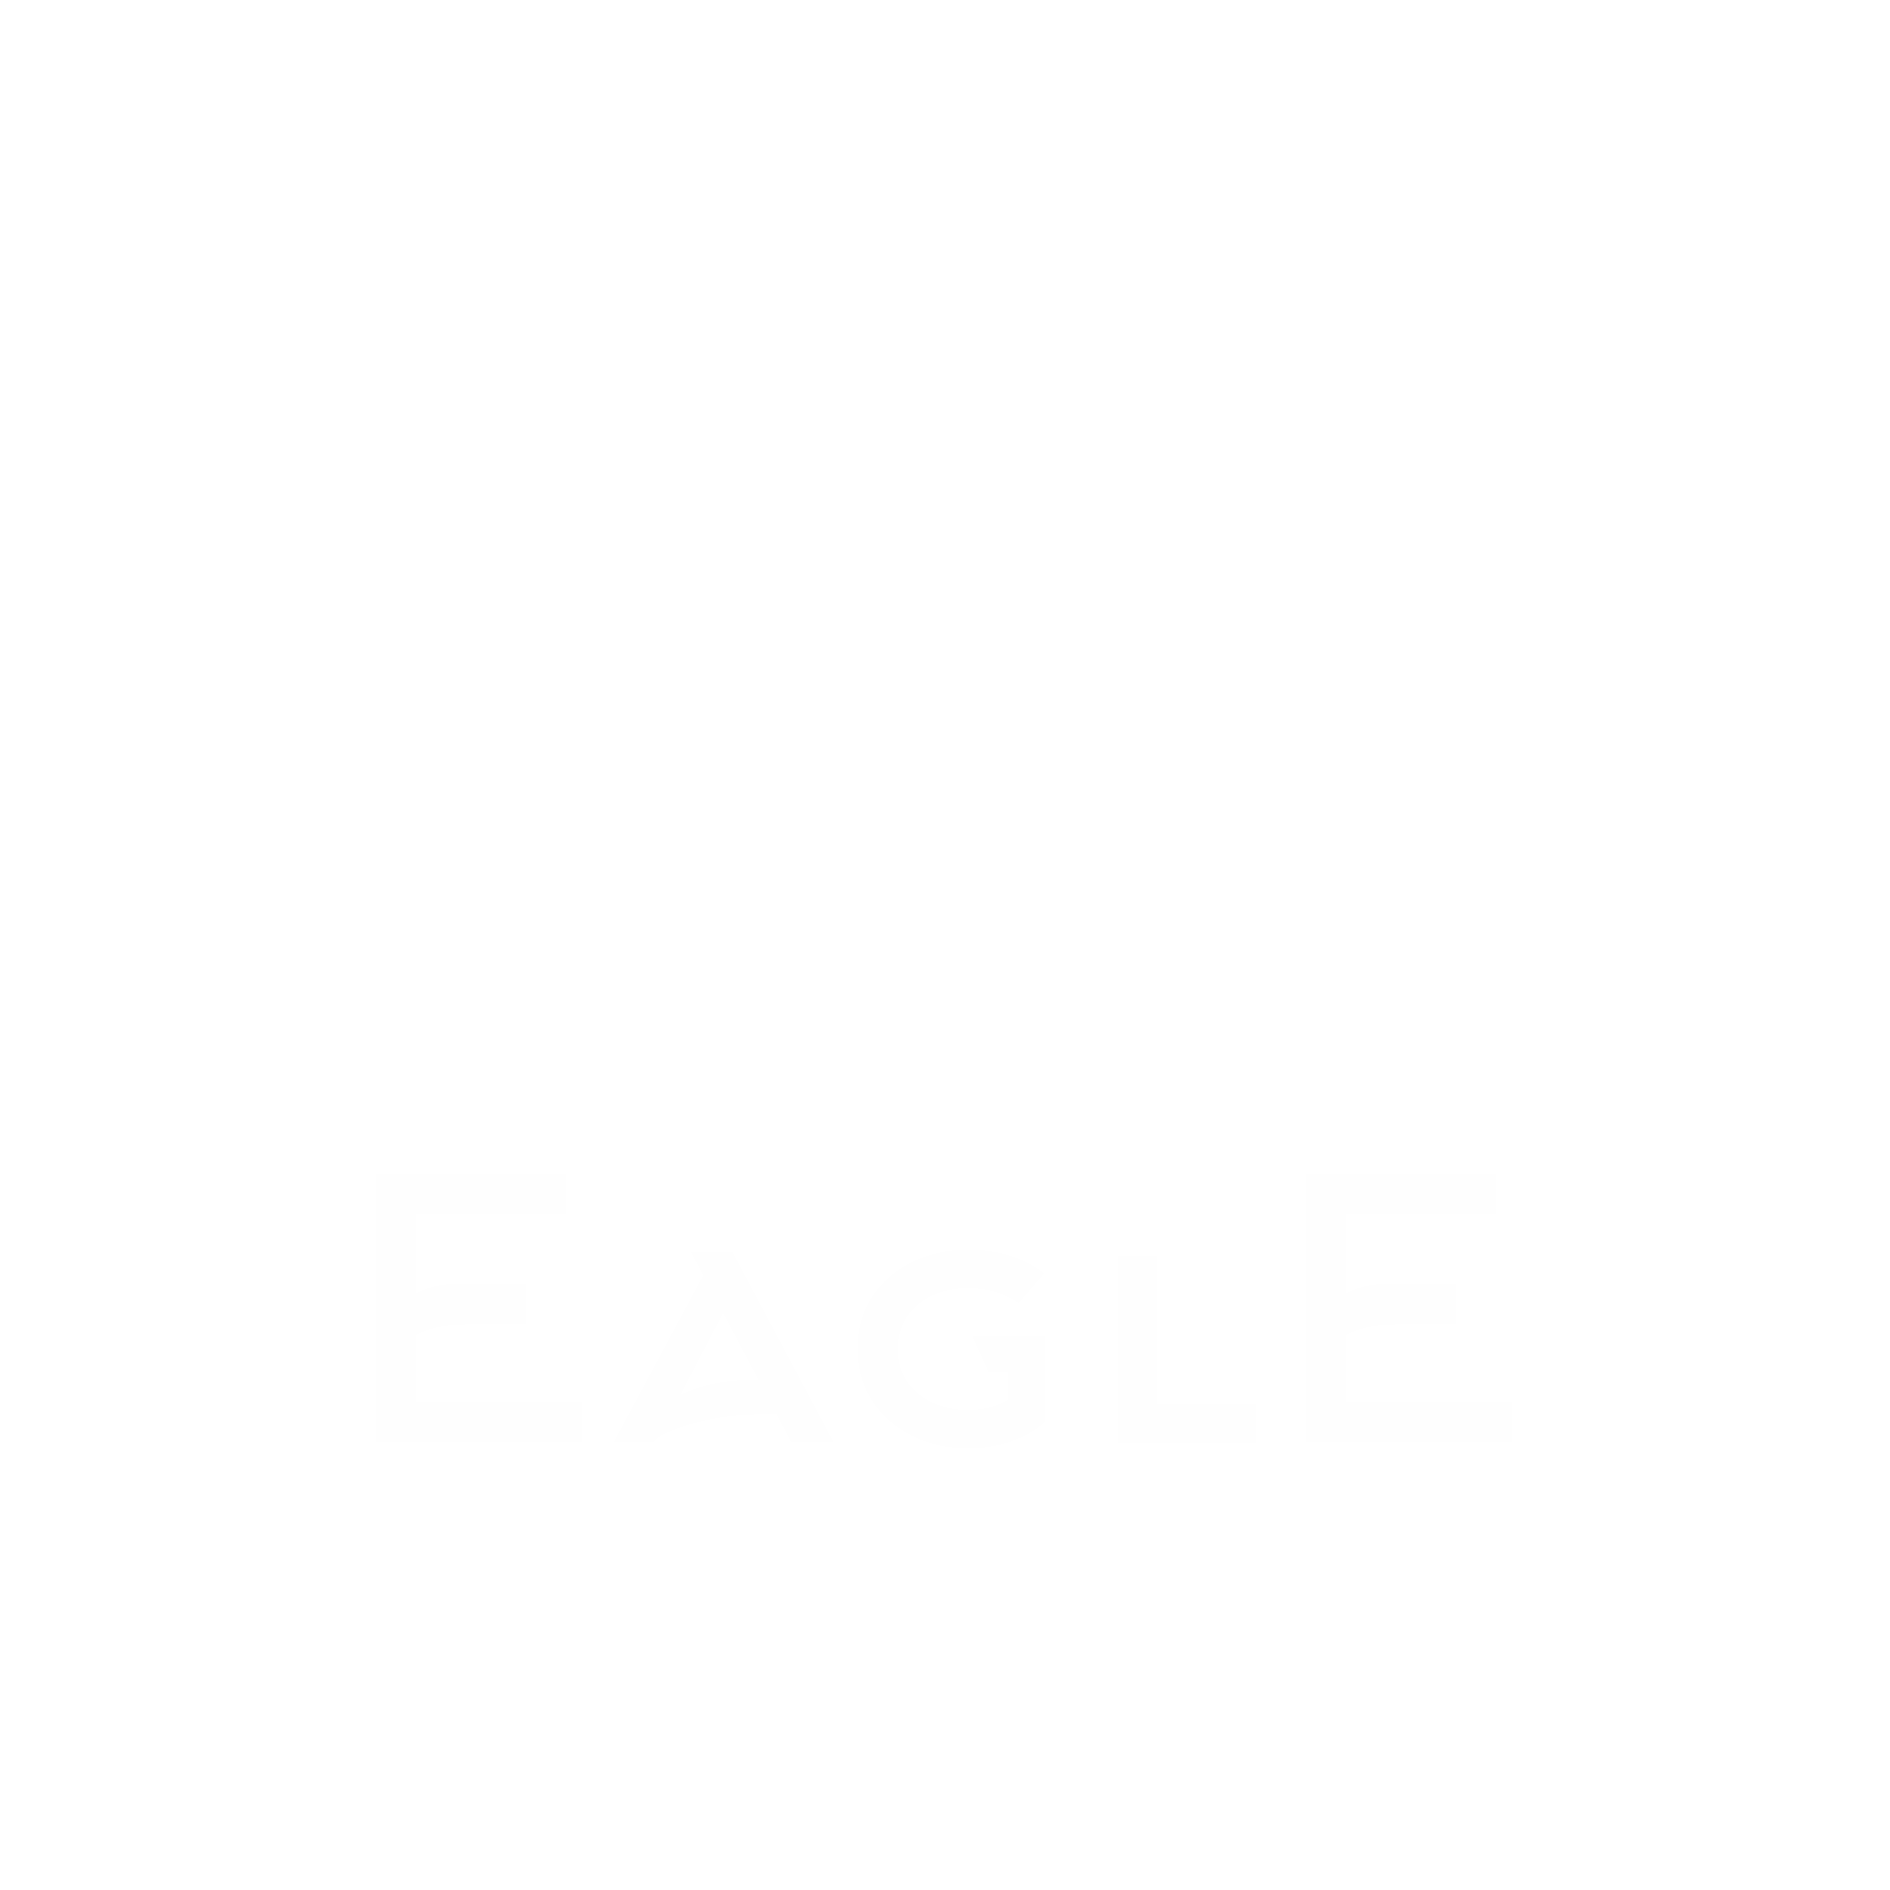 Eagle Digital Service